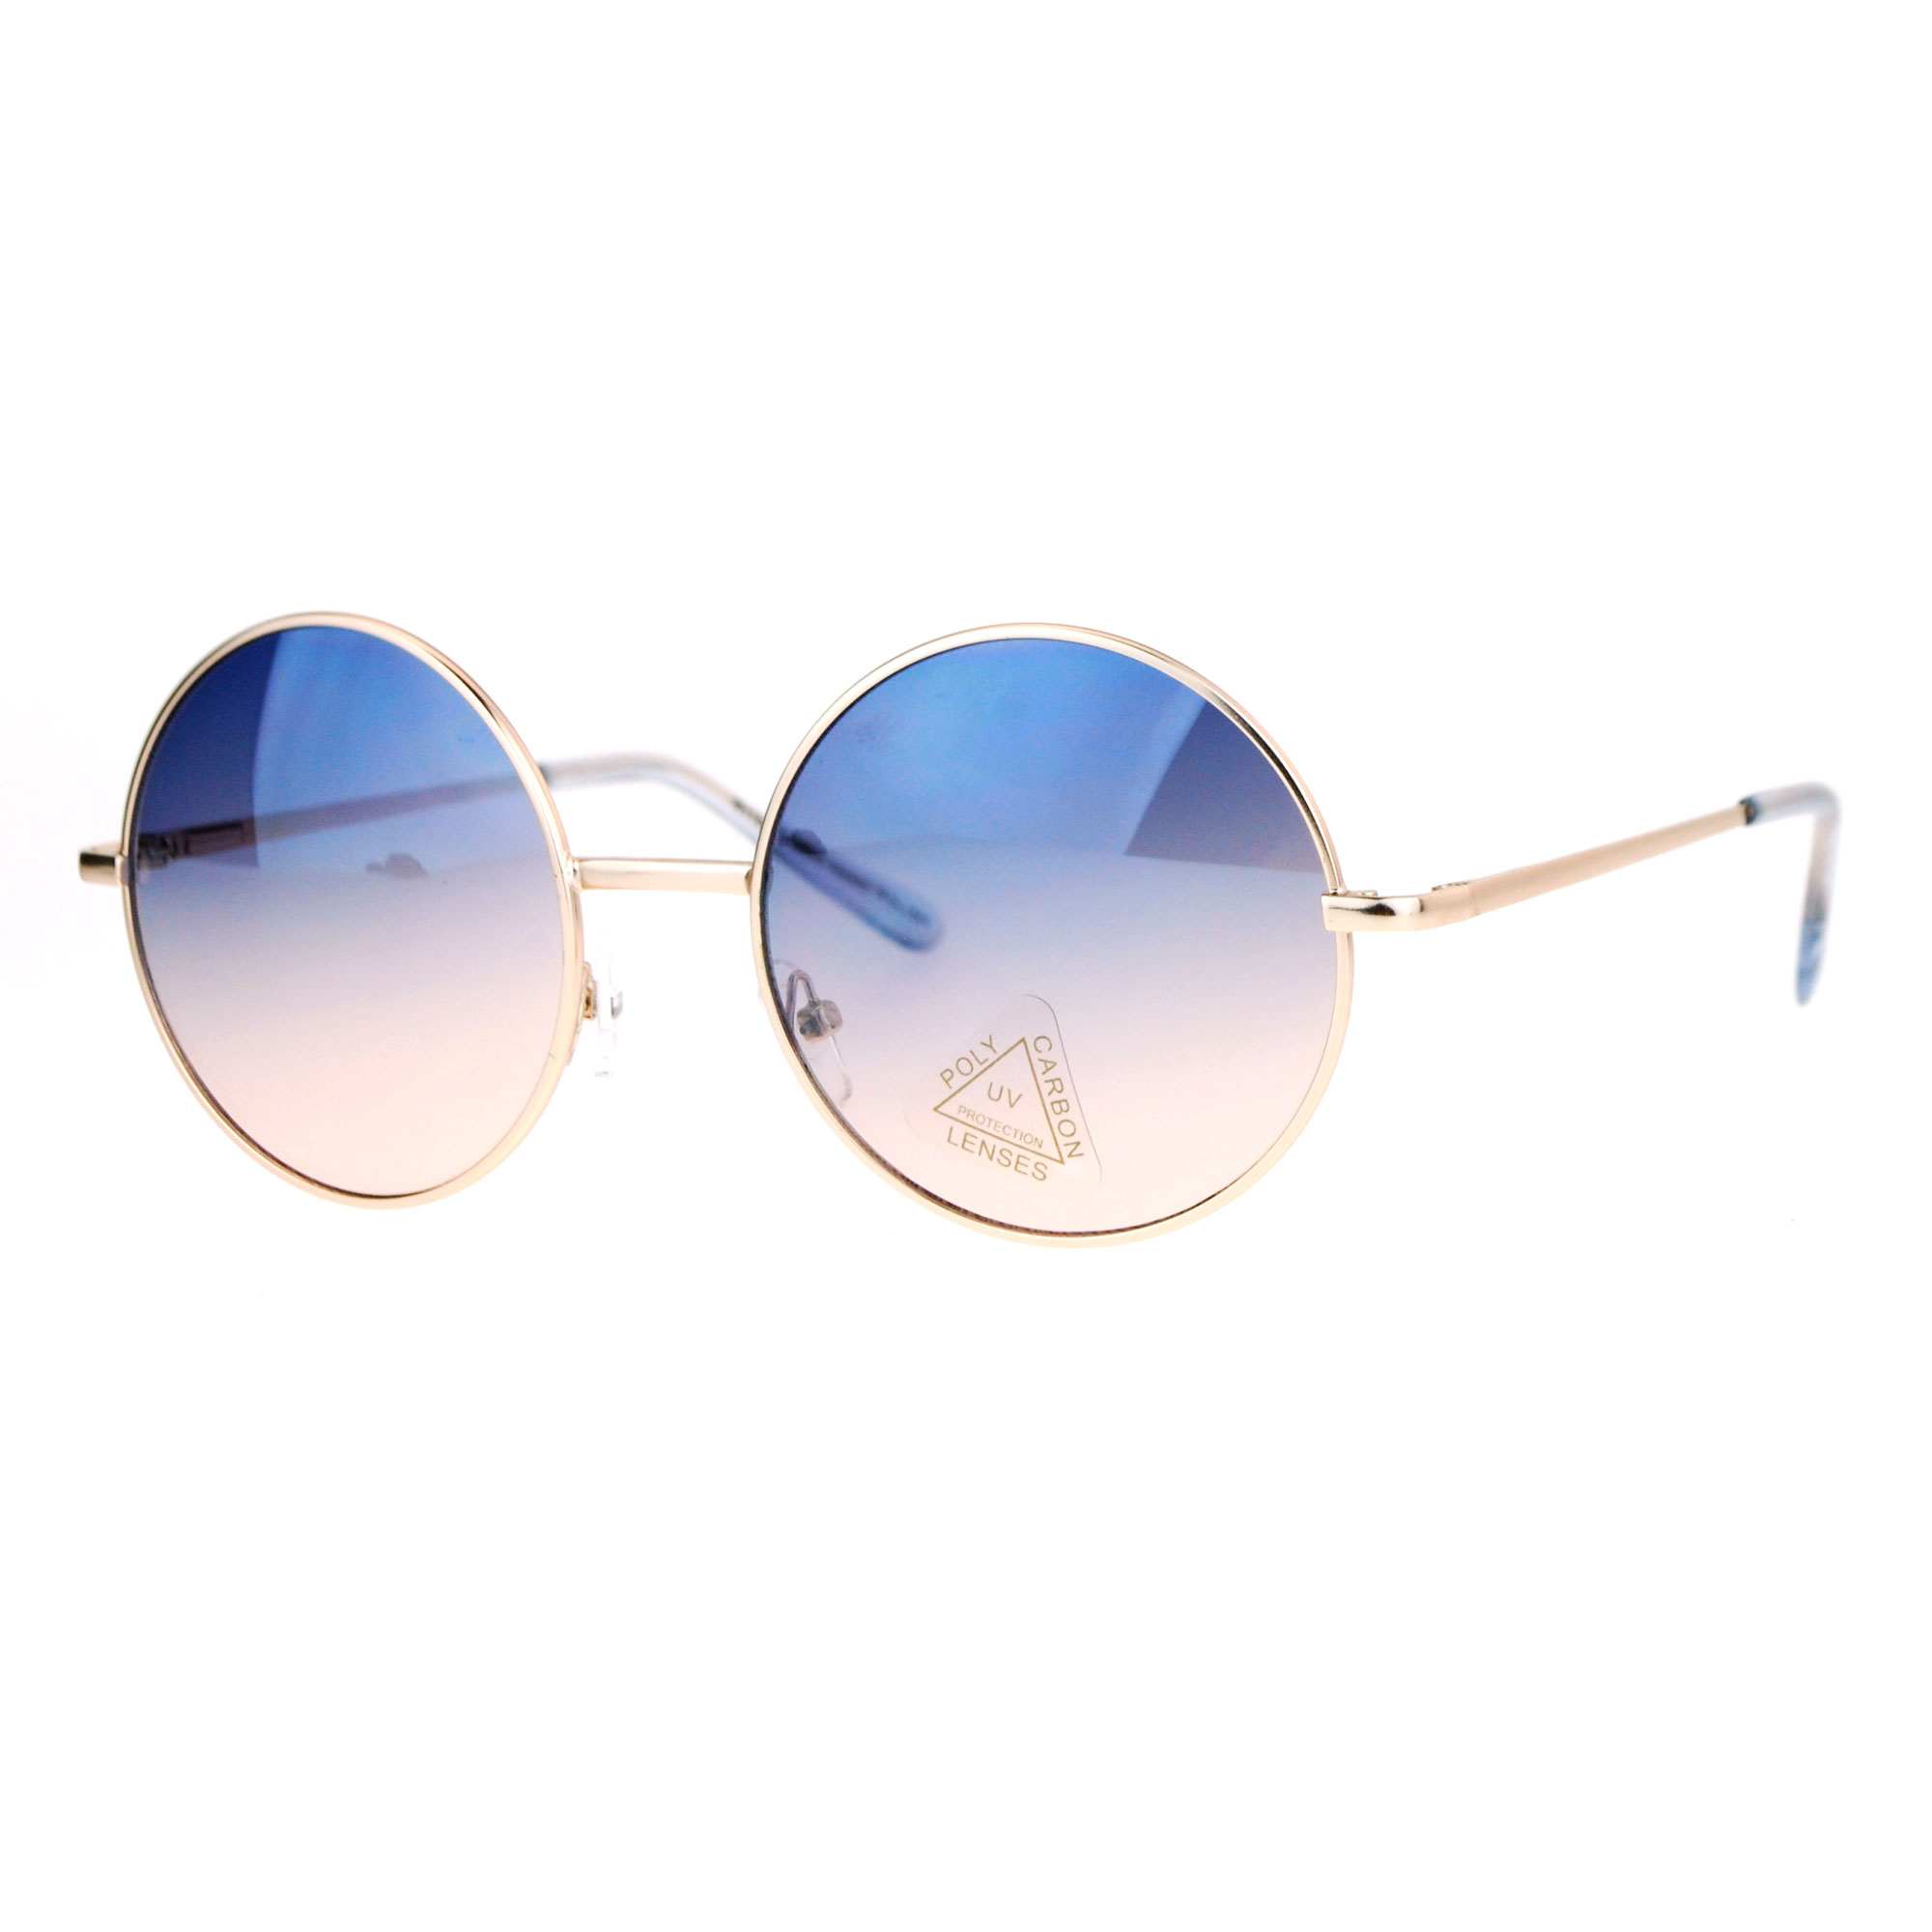 Ray ban sunglasses circle - Image Is Loading Sa106 Oceanic Color Lens Round Circle Hippie Sunglasses